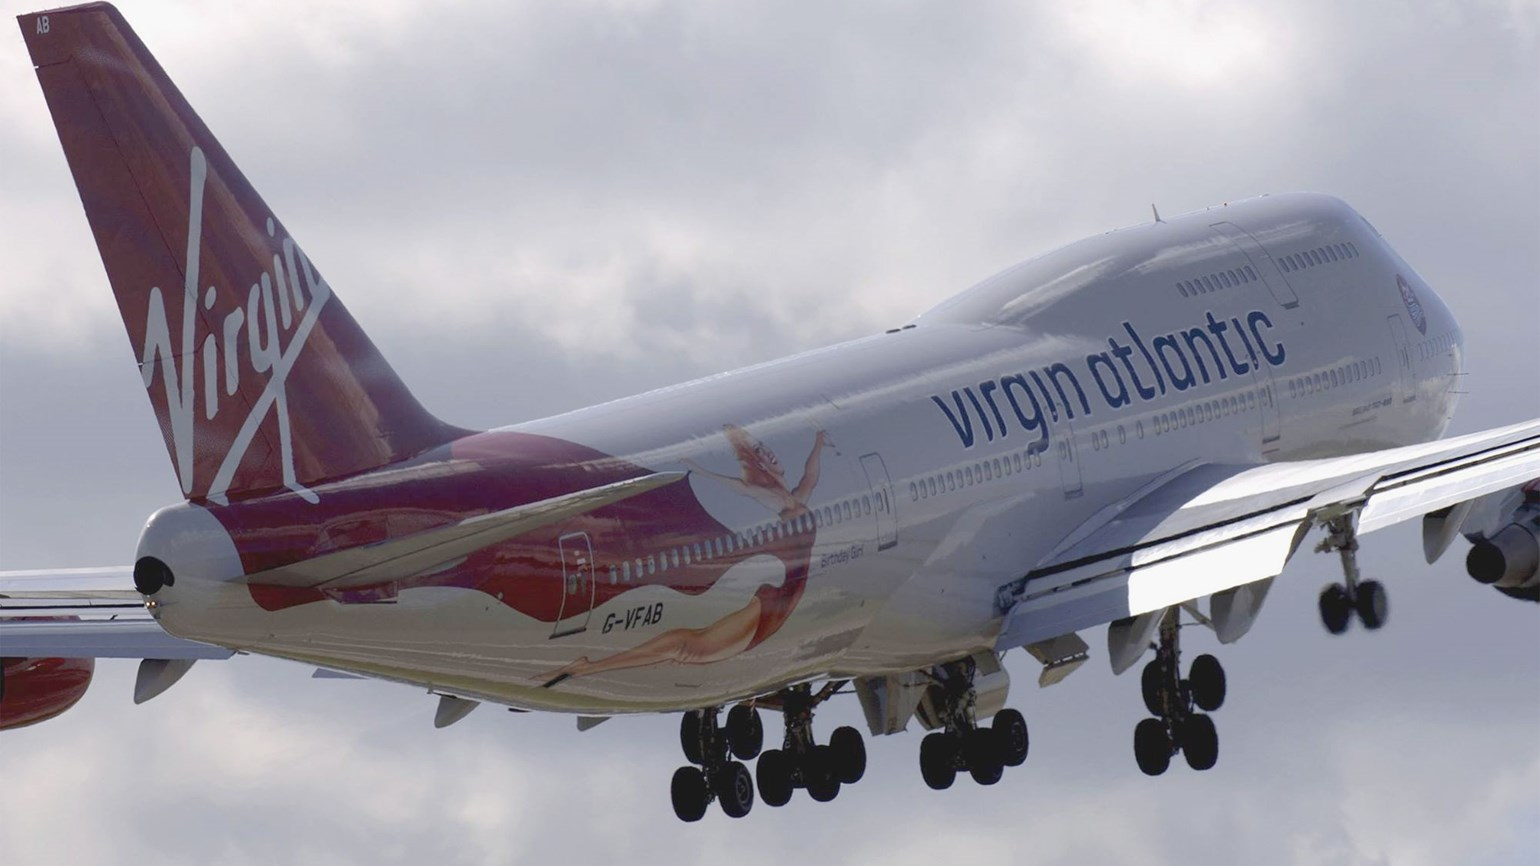 Virgin Atlantic plans to start charging extra for preferred seats in economy